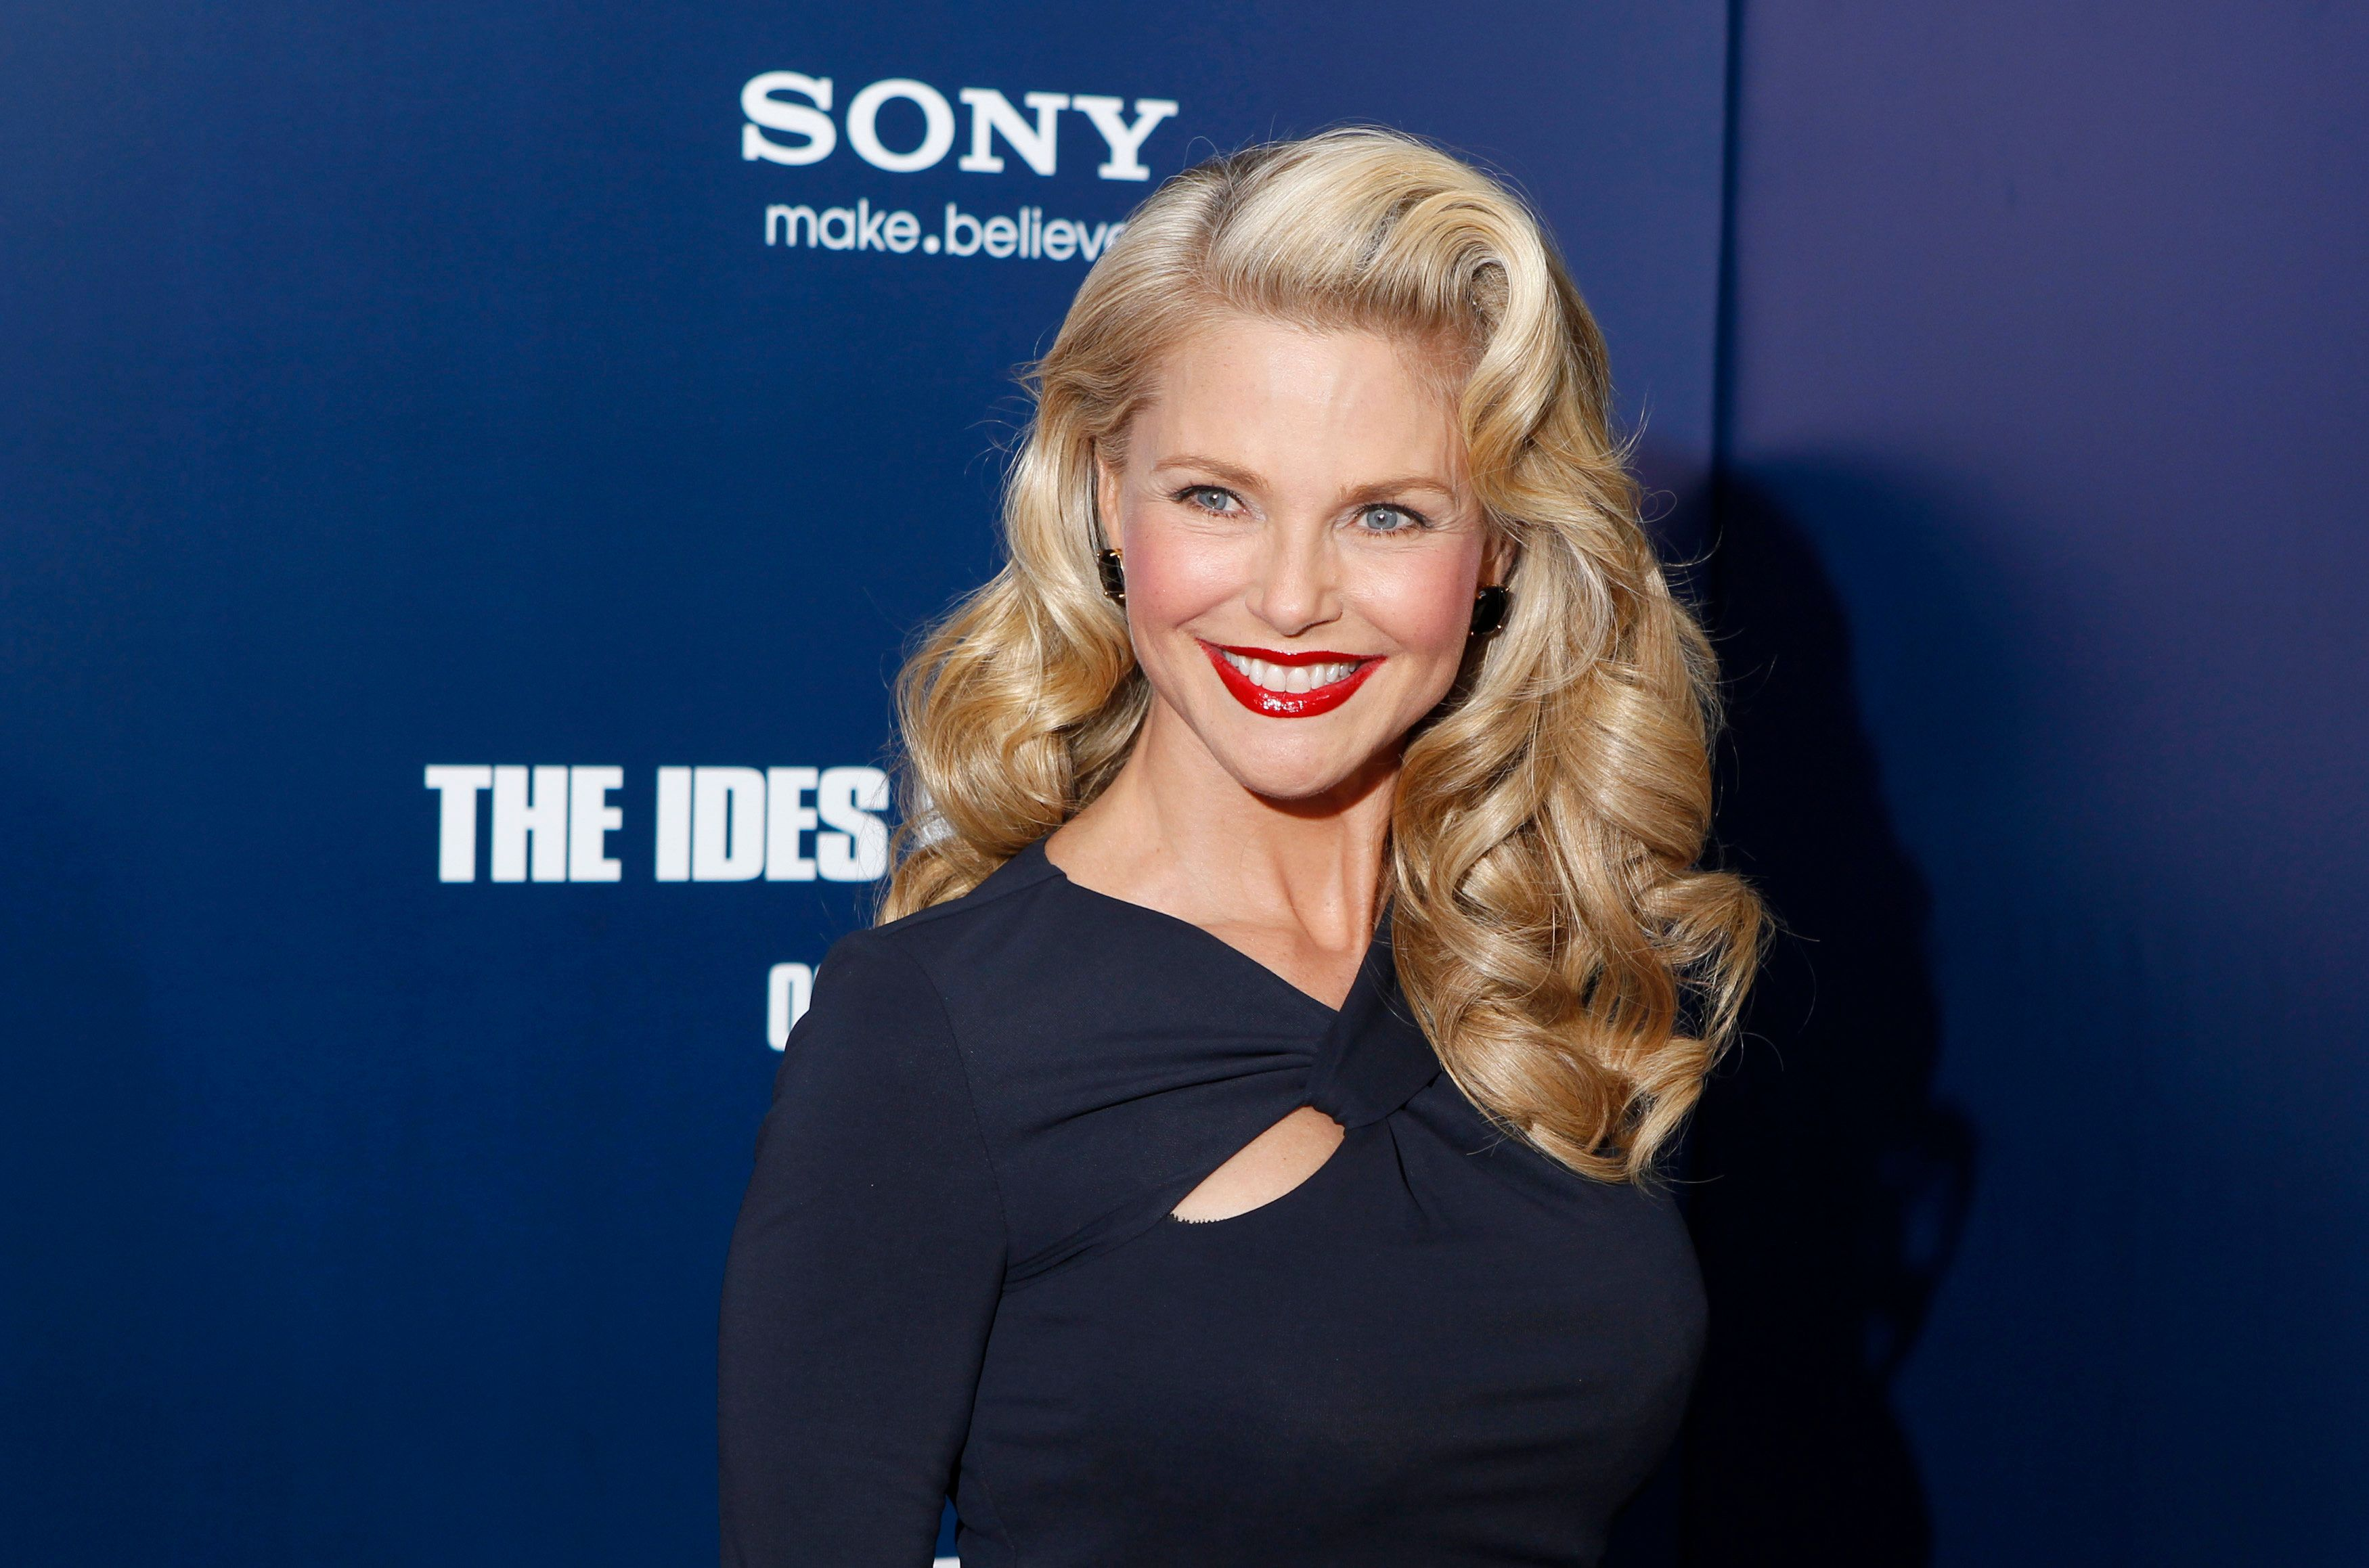 Model Christie Brinkley arrives at the premiere of Ides of March in New York October 5, 2011.  REUTERS/Lucas Jackson (UNITED STATES - Tags: ENTERTAINMENT)